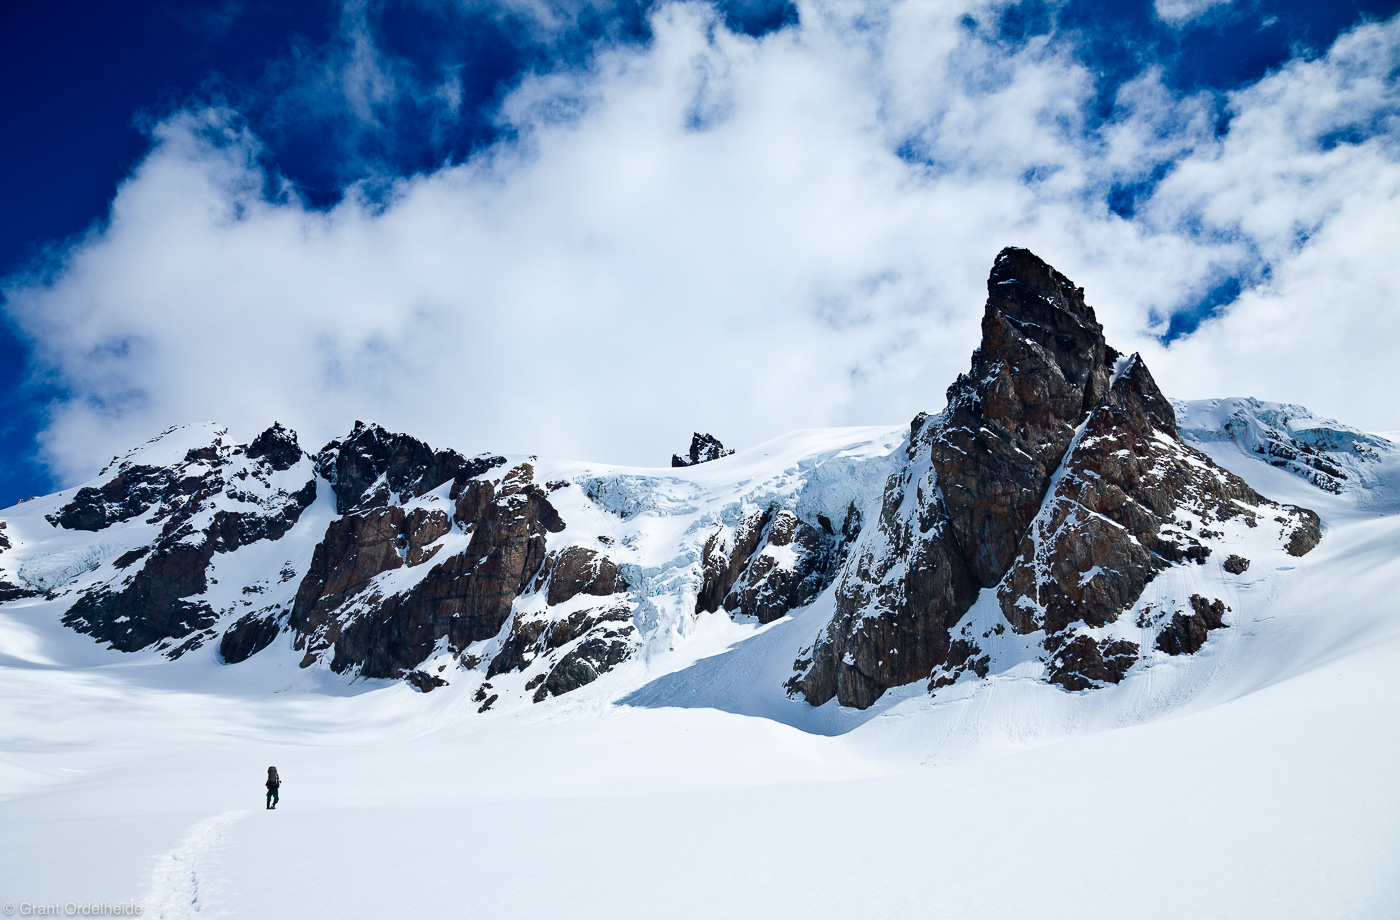 Peñon, glacier, remote, cerro, castillo, national, reserve, climber, photo